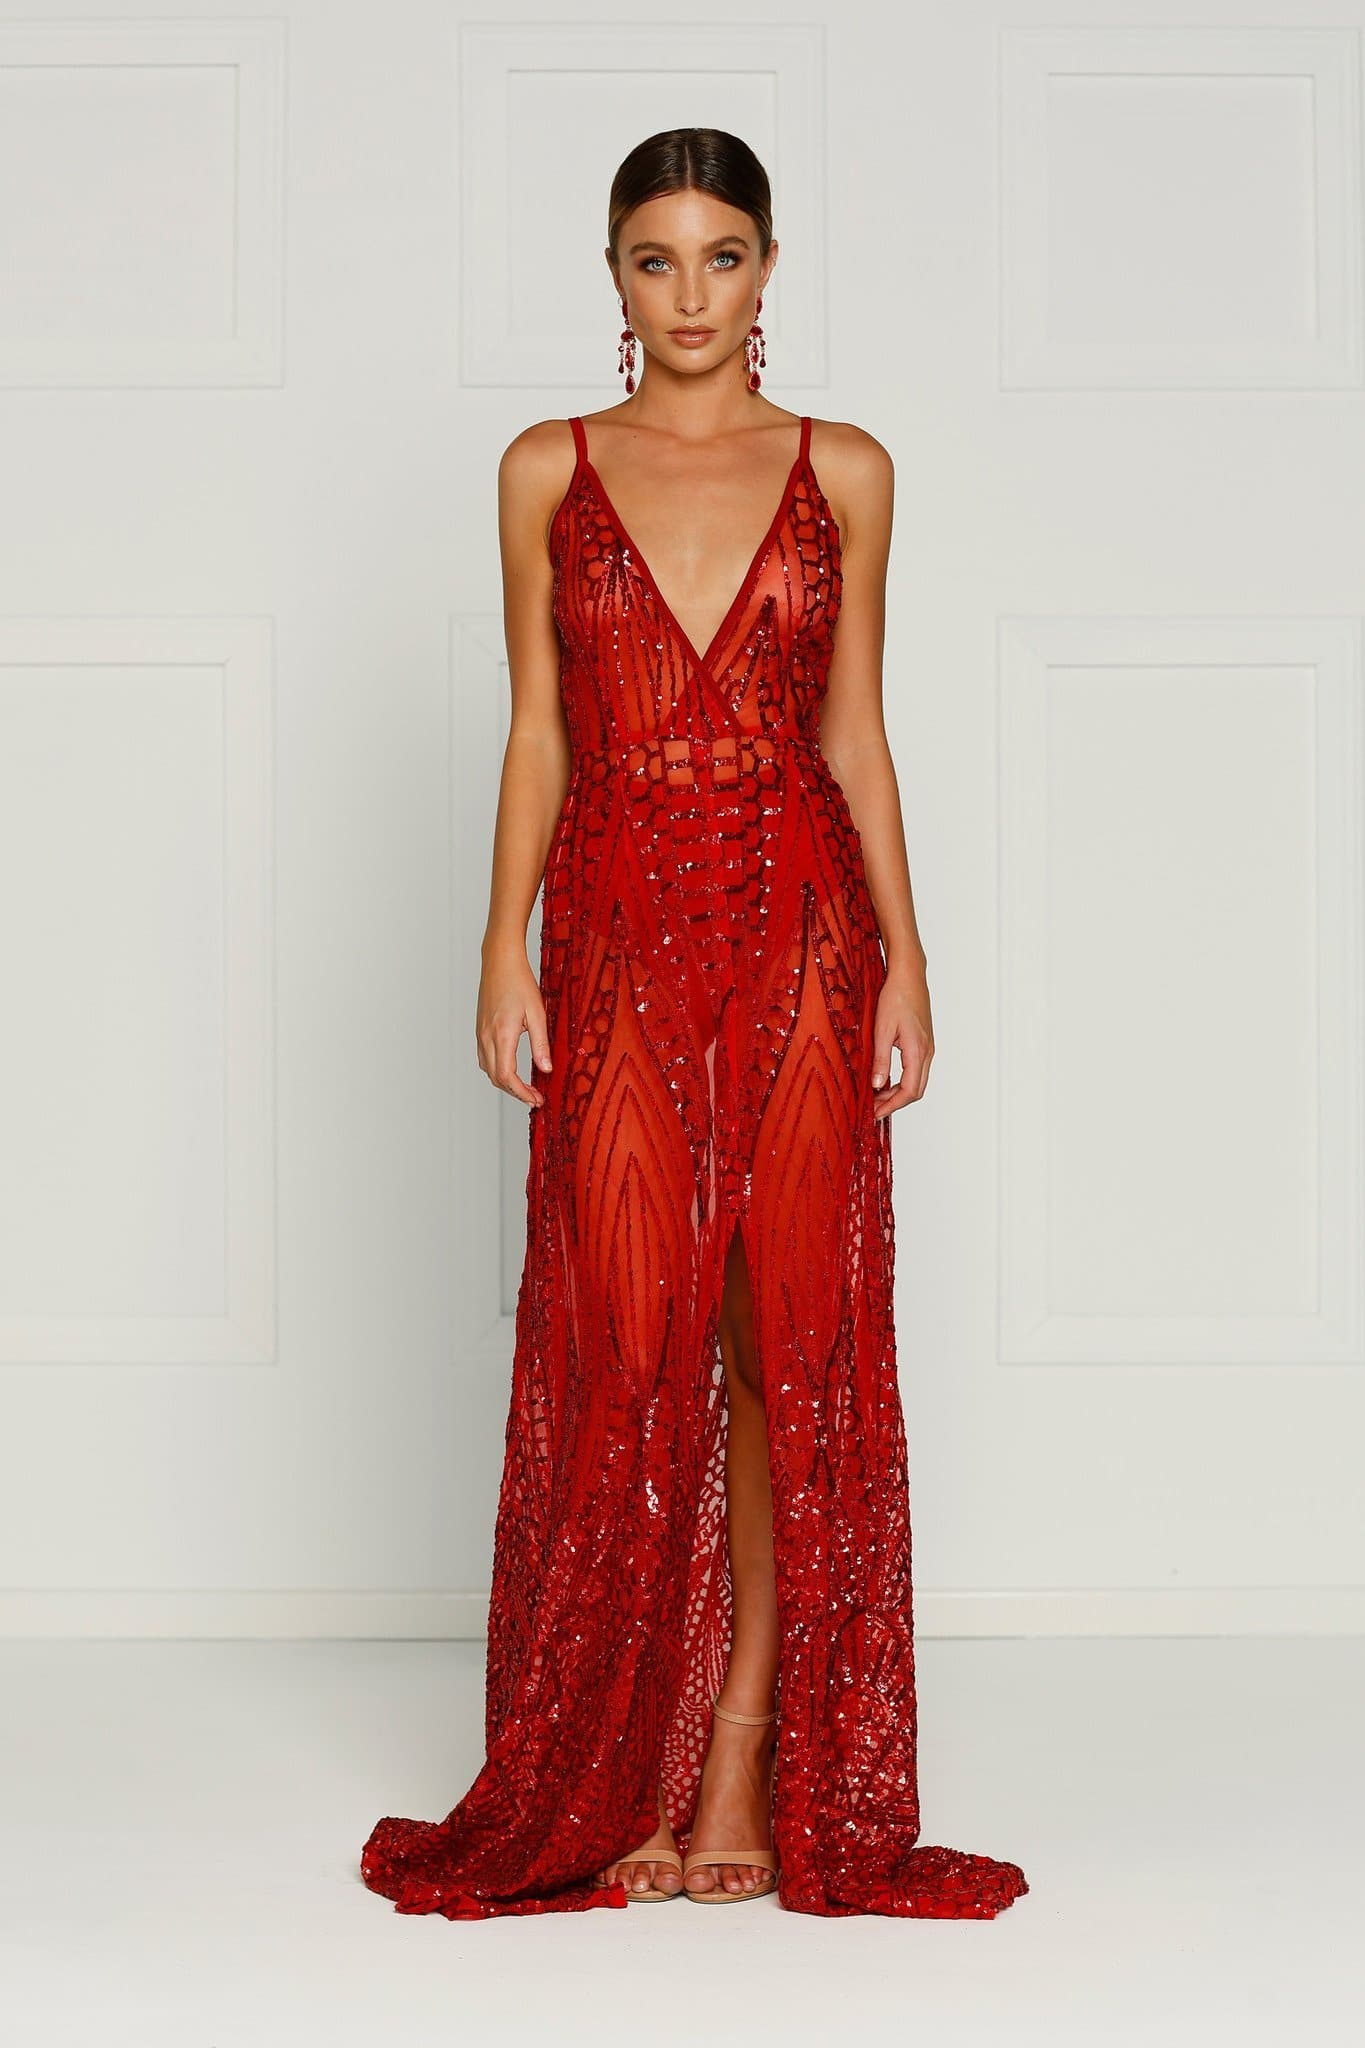 5c3896270b6 Cristal - Red Sheer Sequin Gown with Plunge Neckline   Low Back